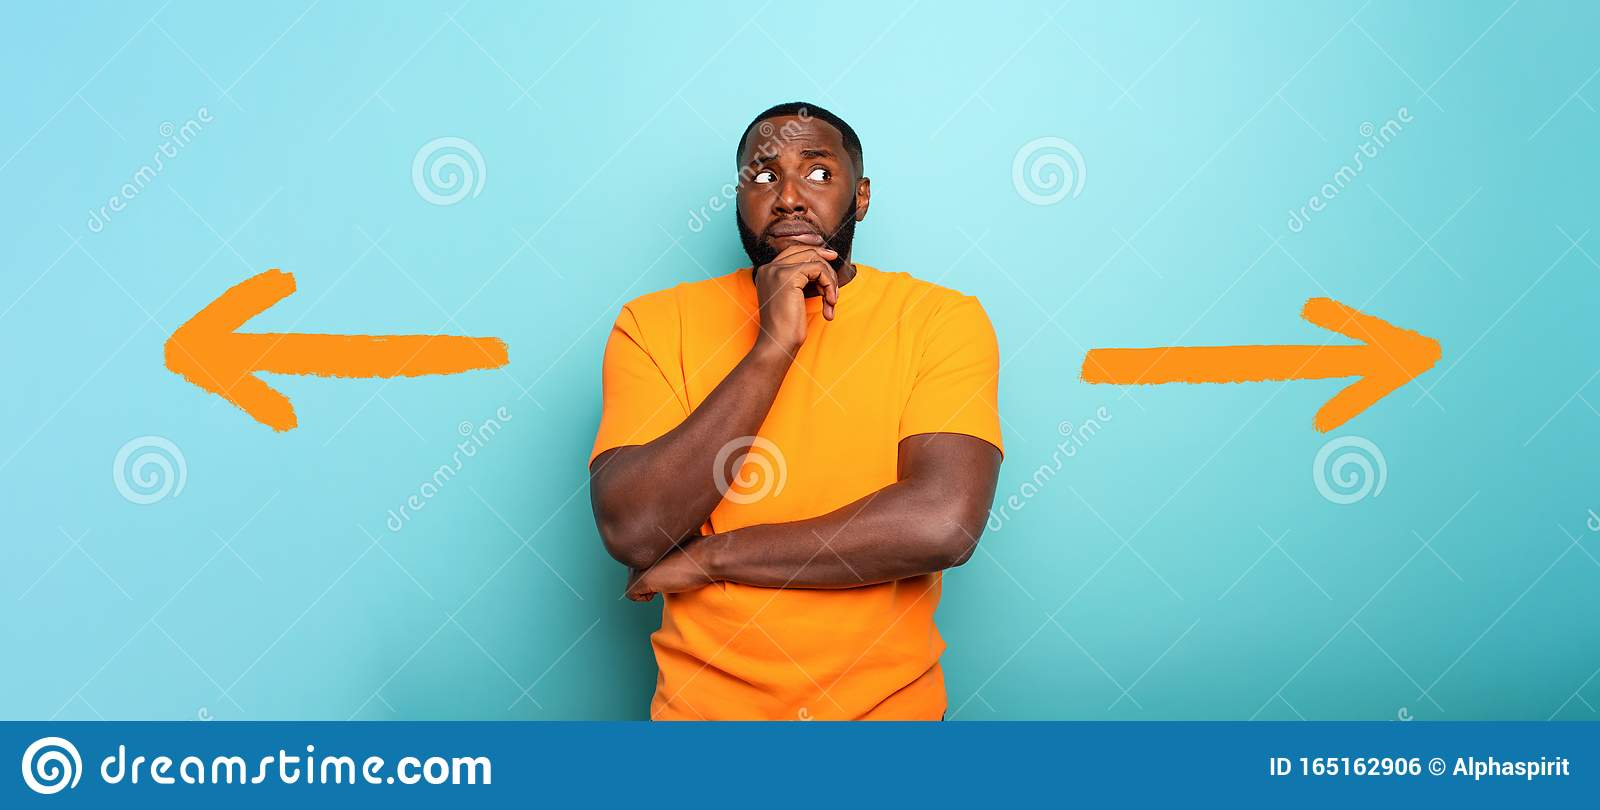 Confuse and pensive expression of a boy with right or left to choose. cyan colored background